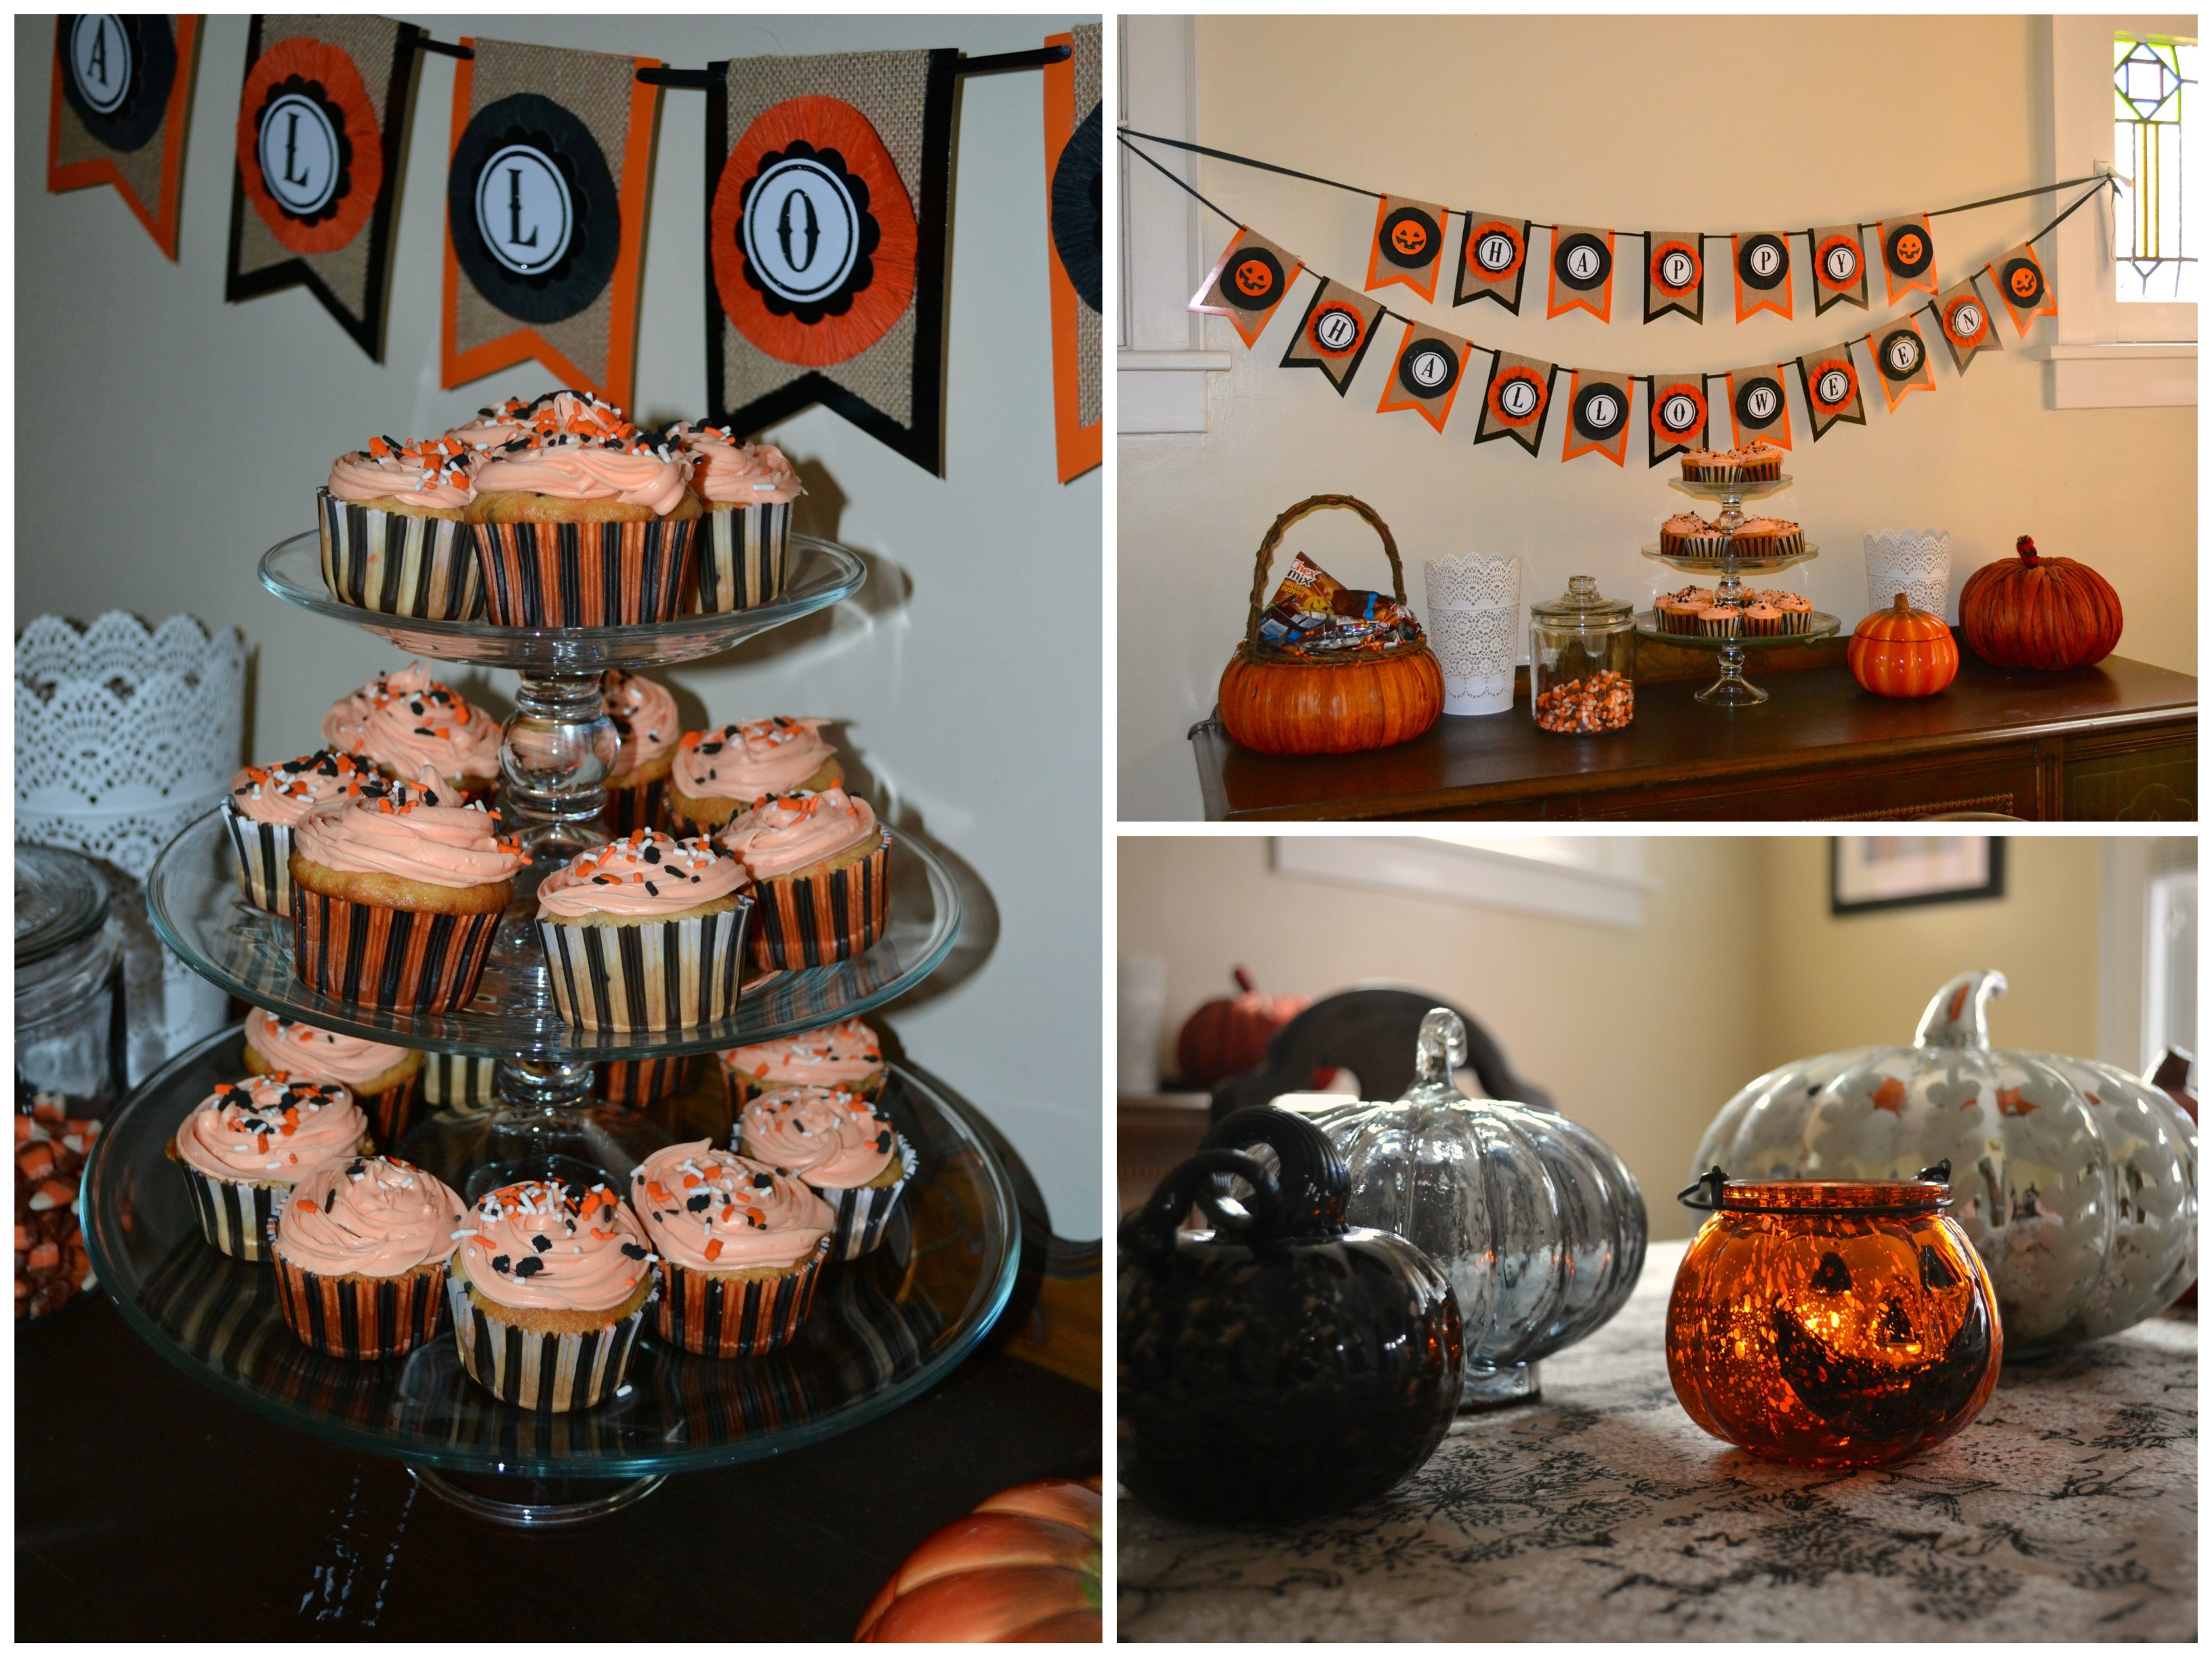 Pumpkin Carving Party Treats Sweet As A Peach - Pretty Halloween Decorations